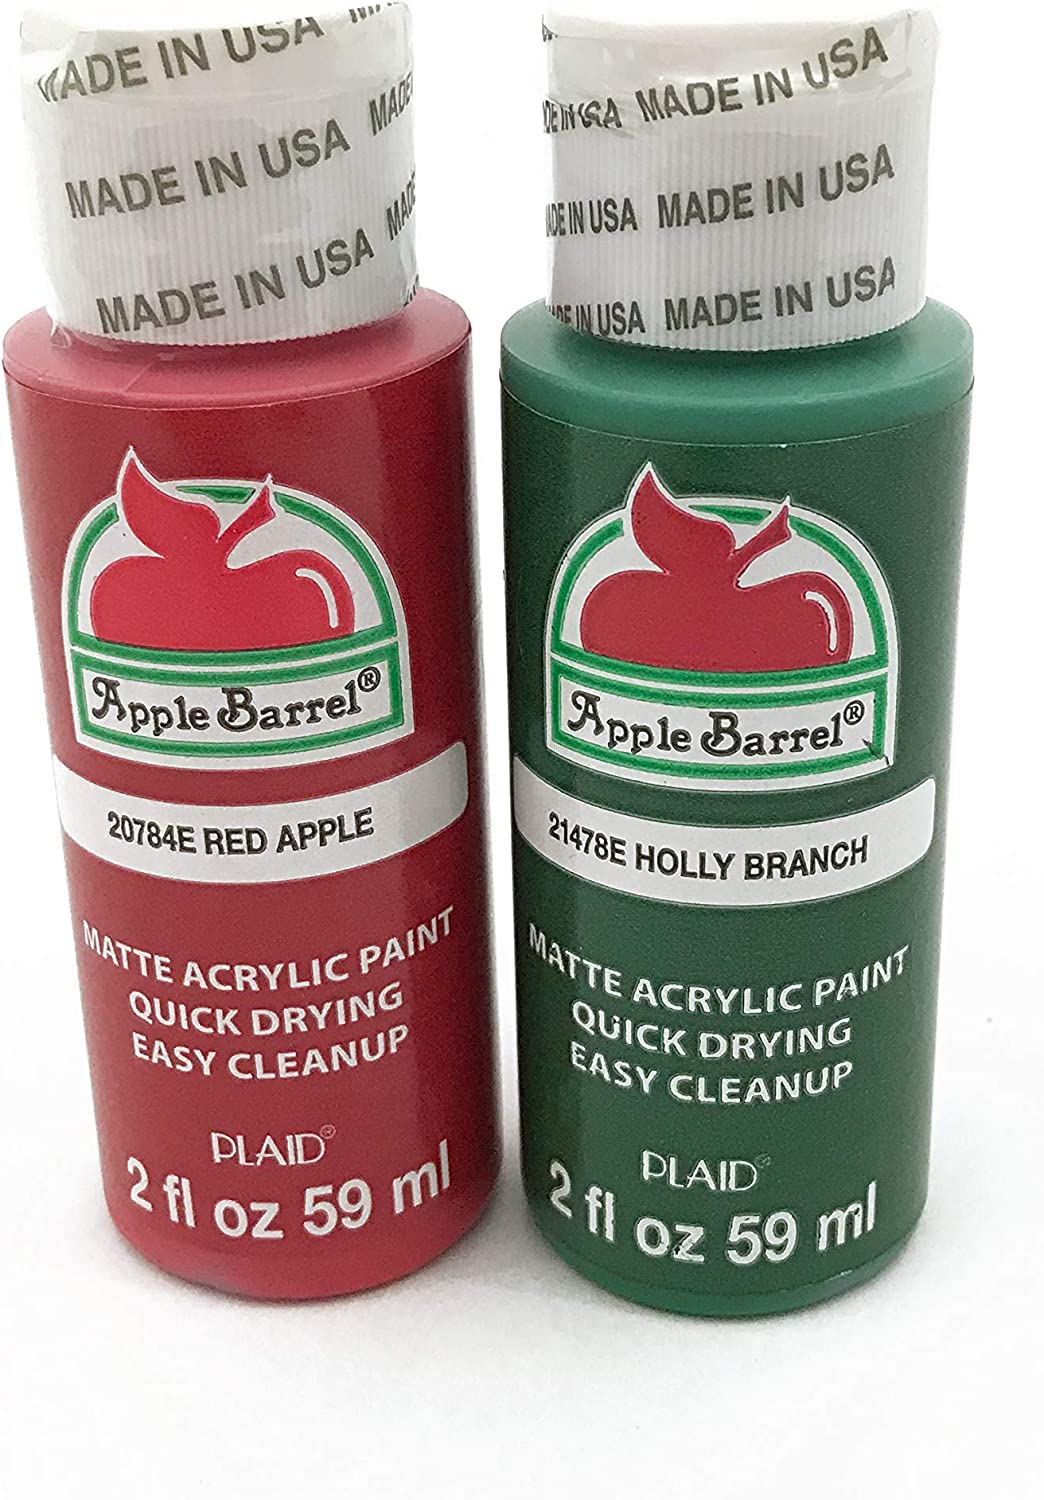 Apple Barrel Acrylic Paint Classic Christmas Set - Red Apple and Holly Branch Green (2 Ounces Each)